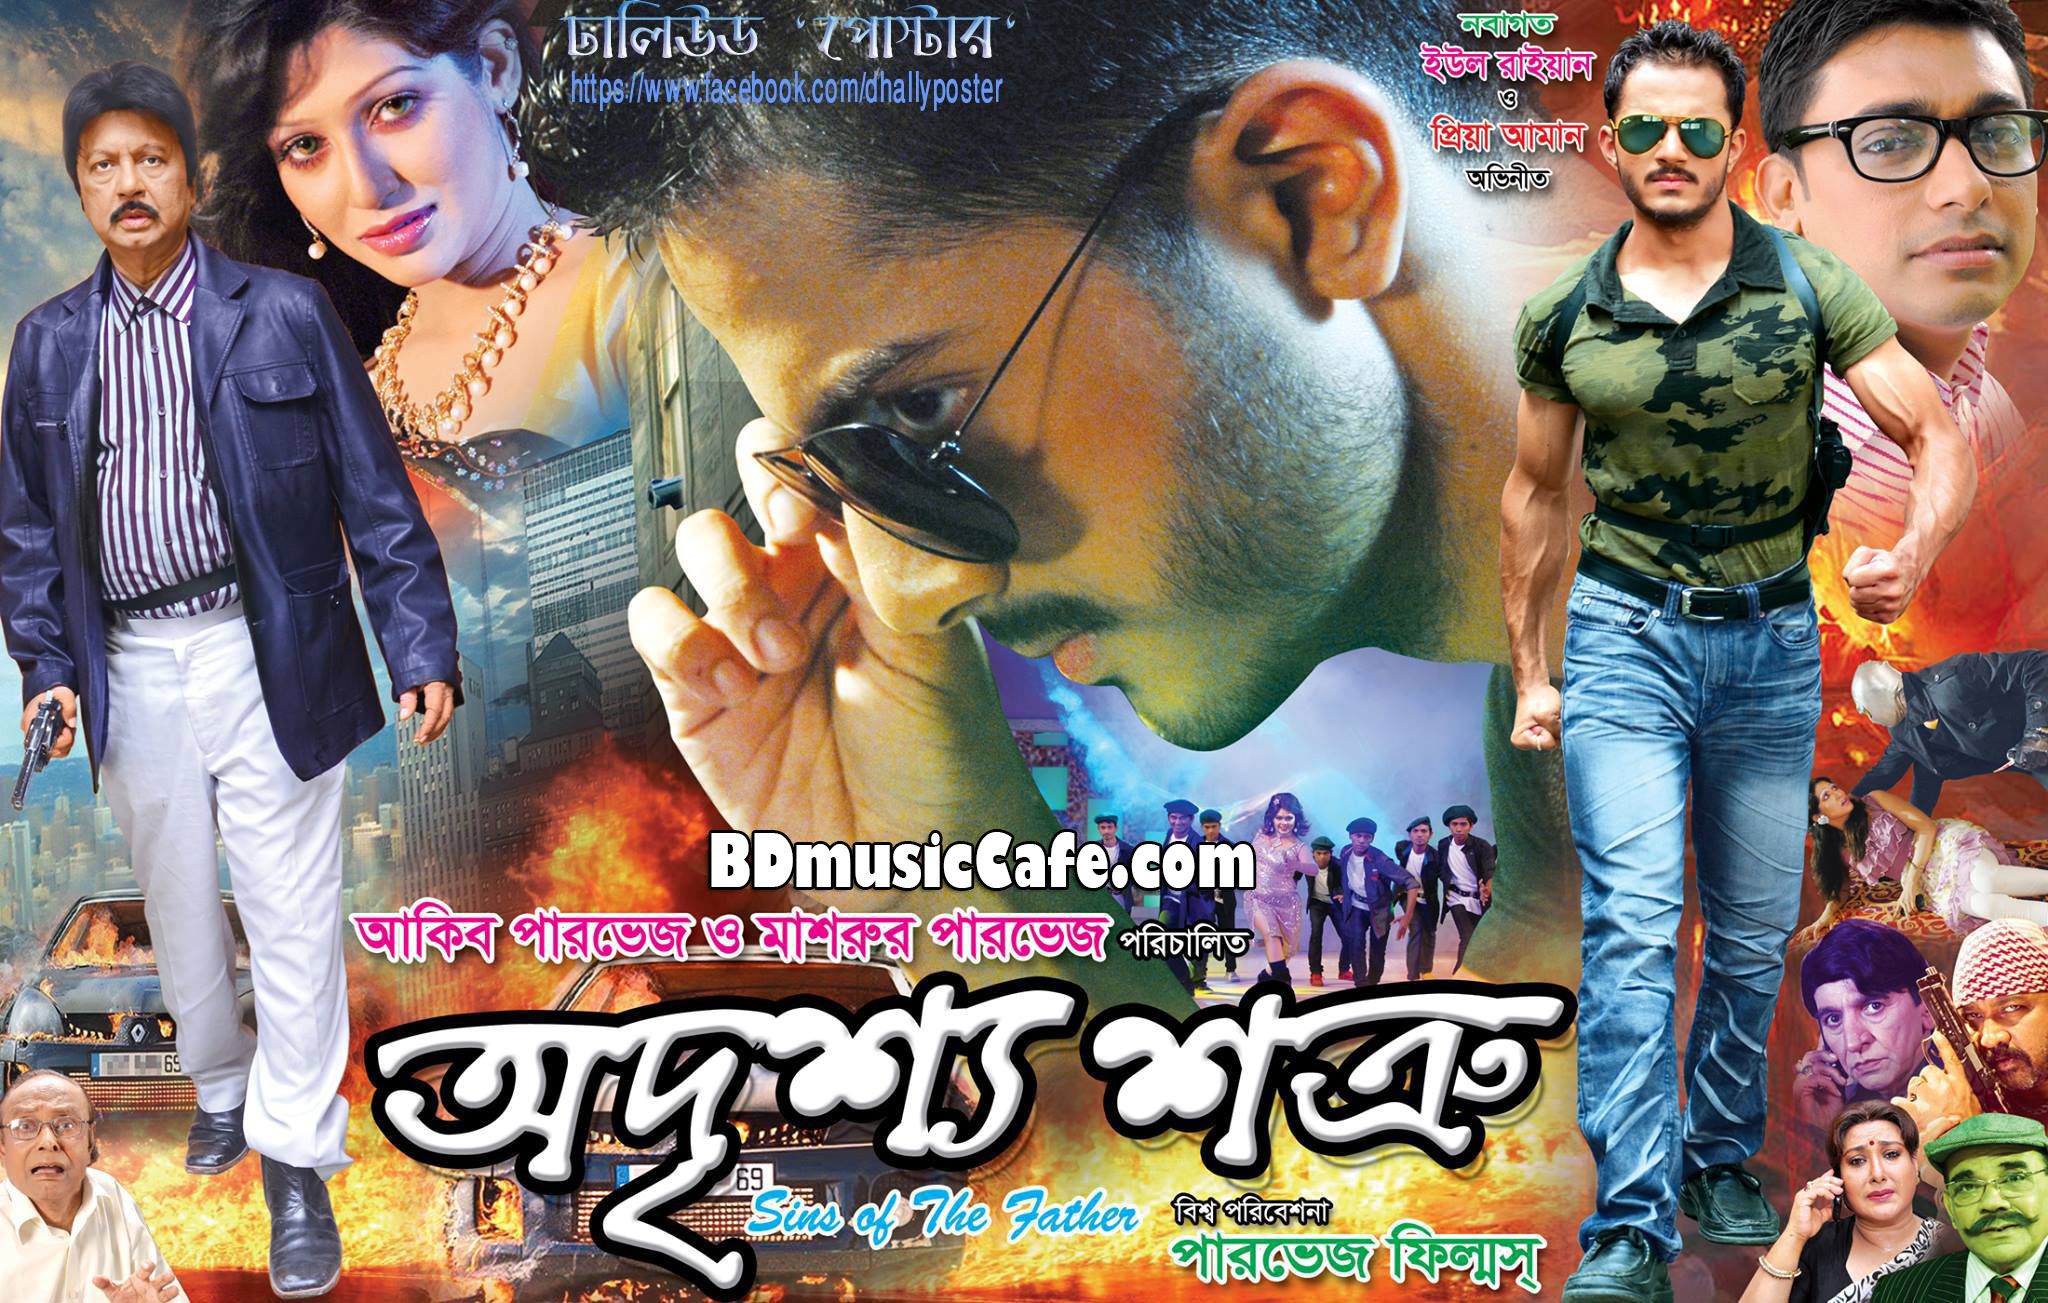 Bangla Oddrisho Shotru Movie Mp3 Songs Album Download | BD Music Cafe